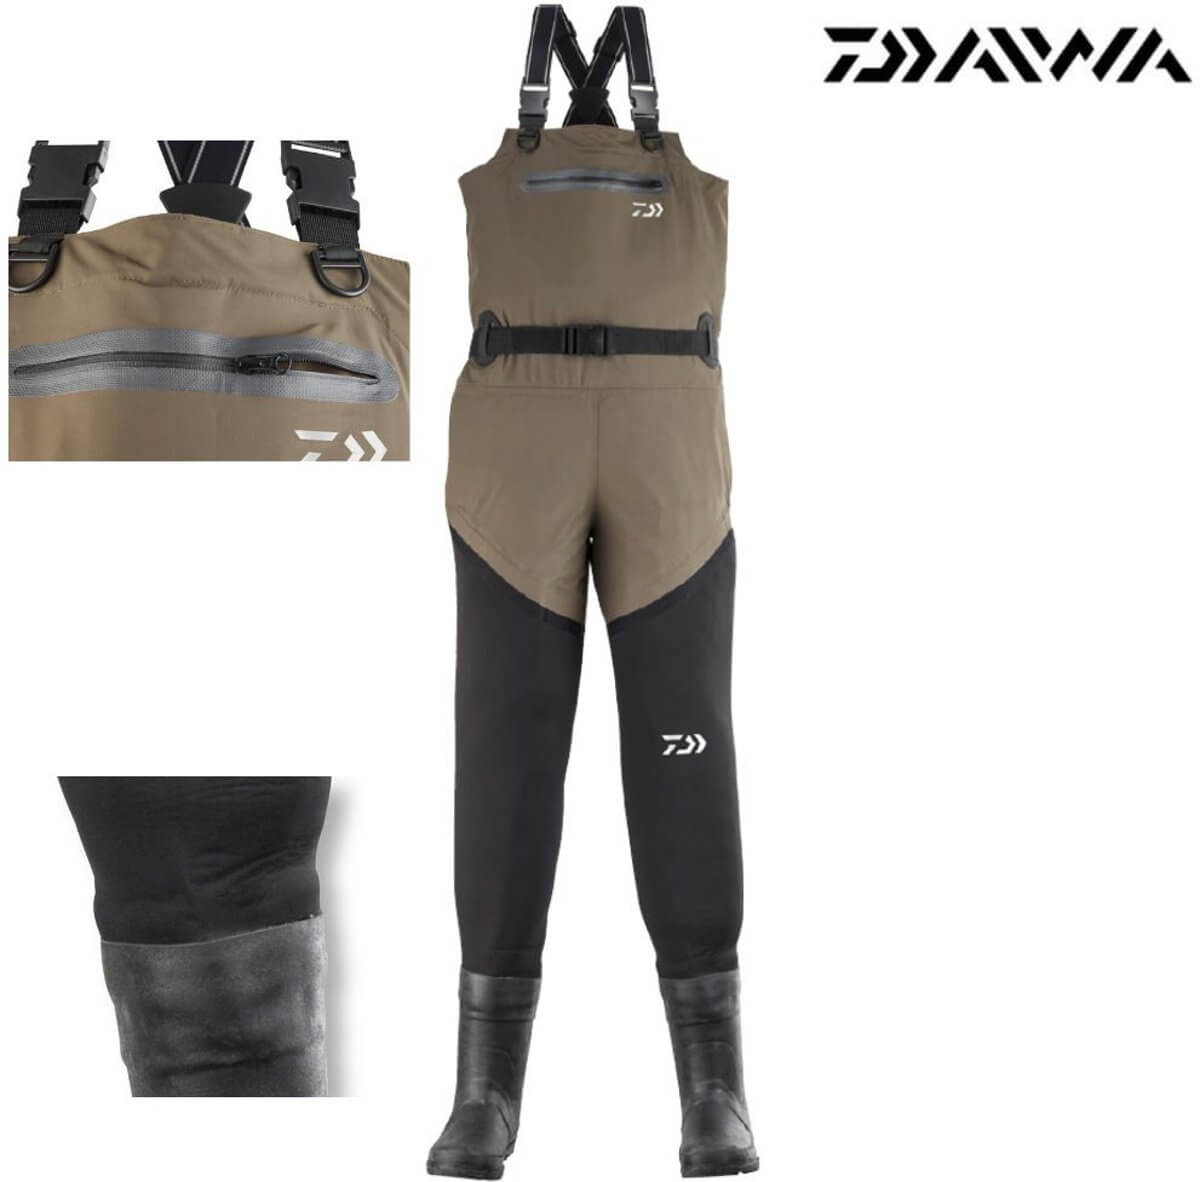 68432138be9 DAIWA HYBRID NEOPRENE WADER WITH BOOT&BREATHABLE CHEST - Monster ...